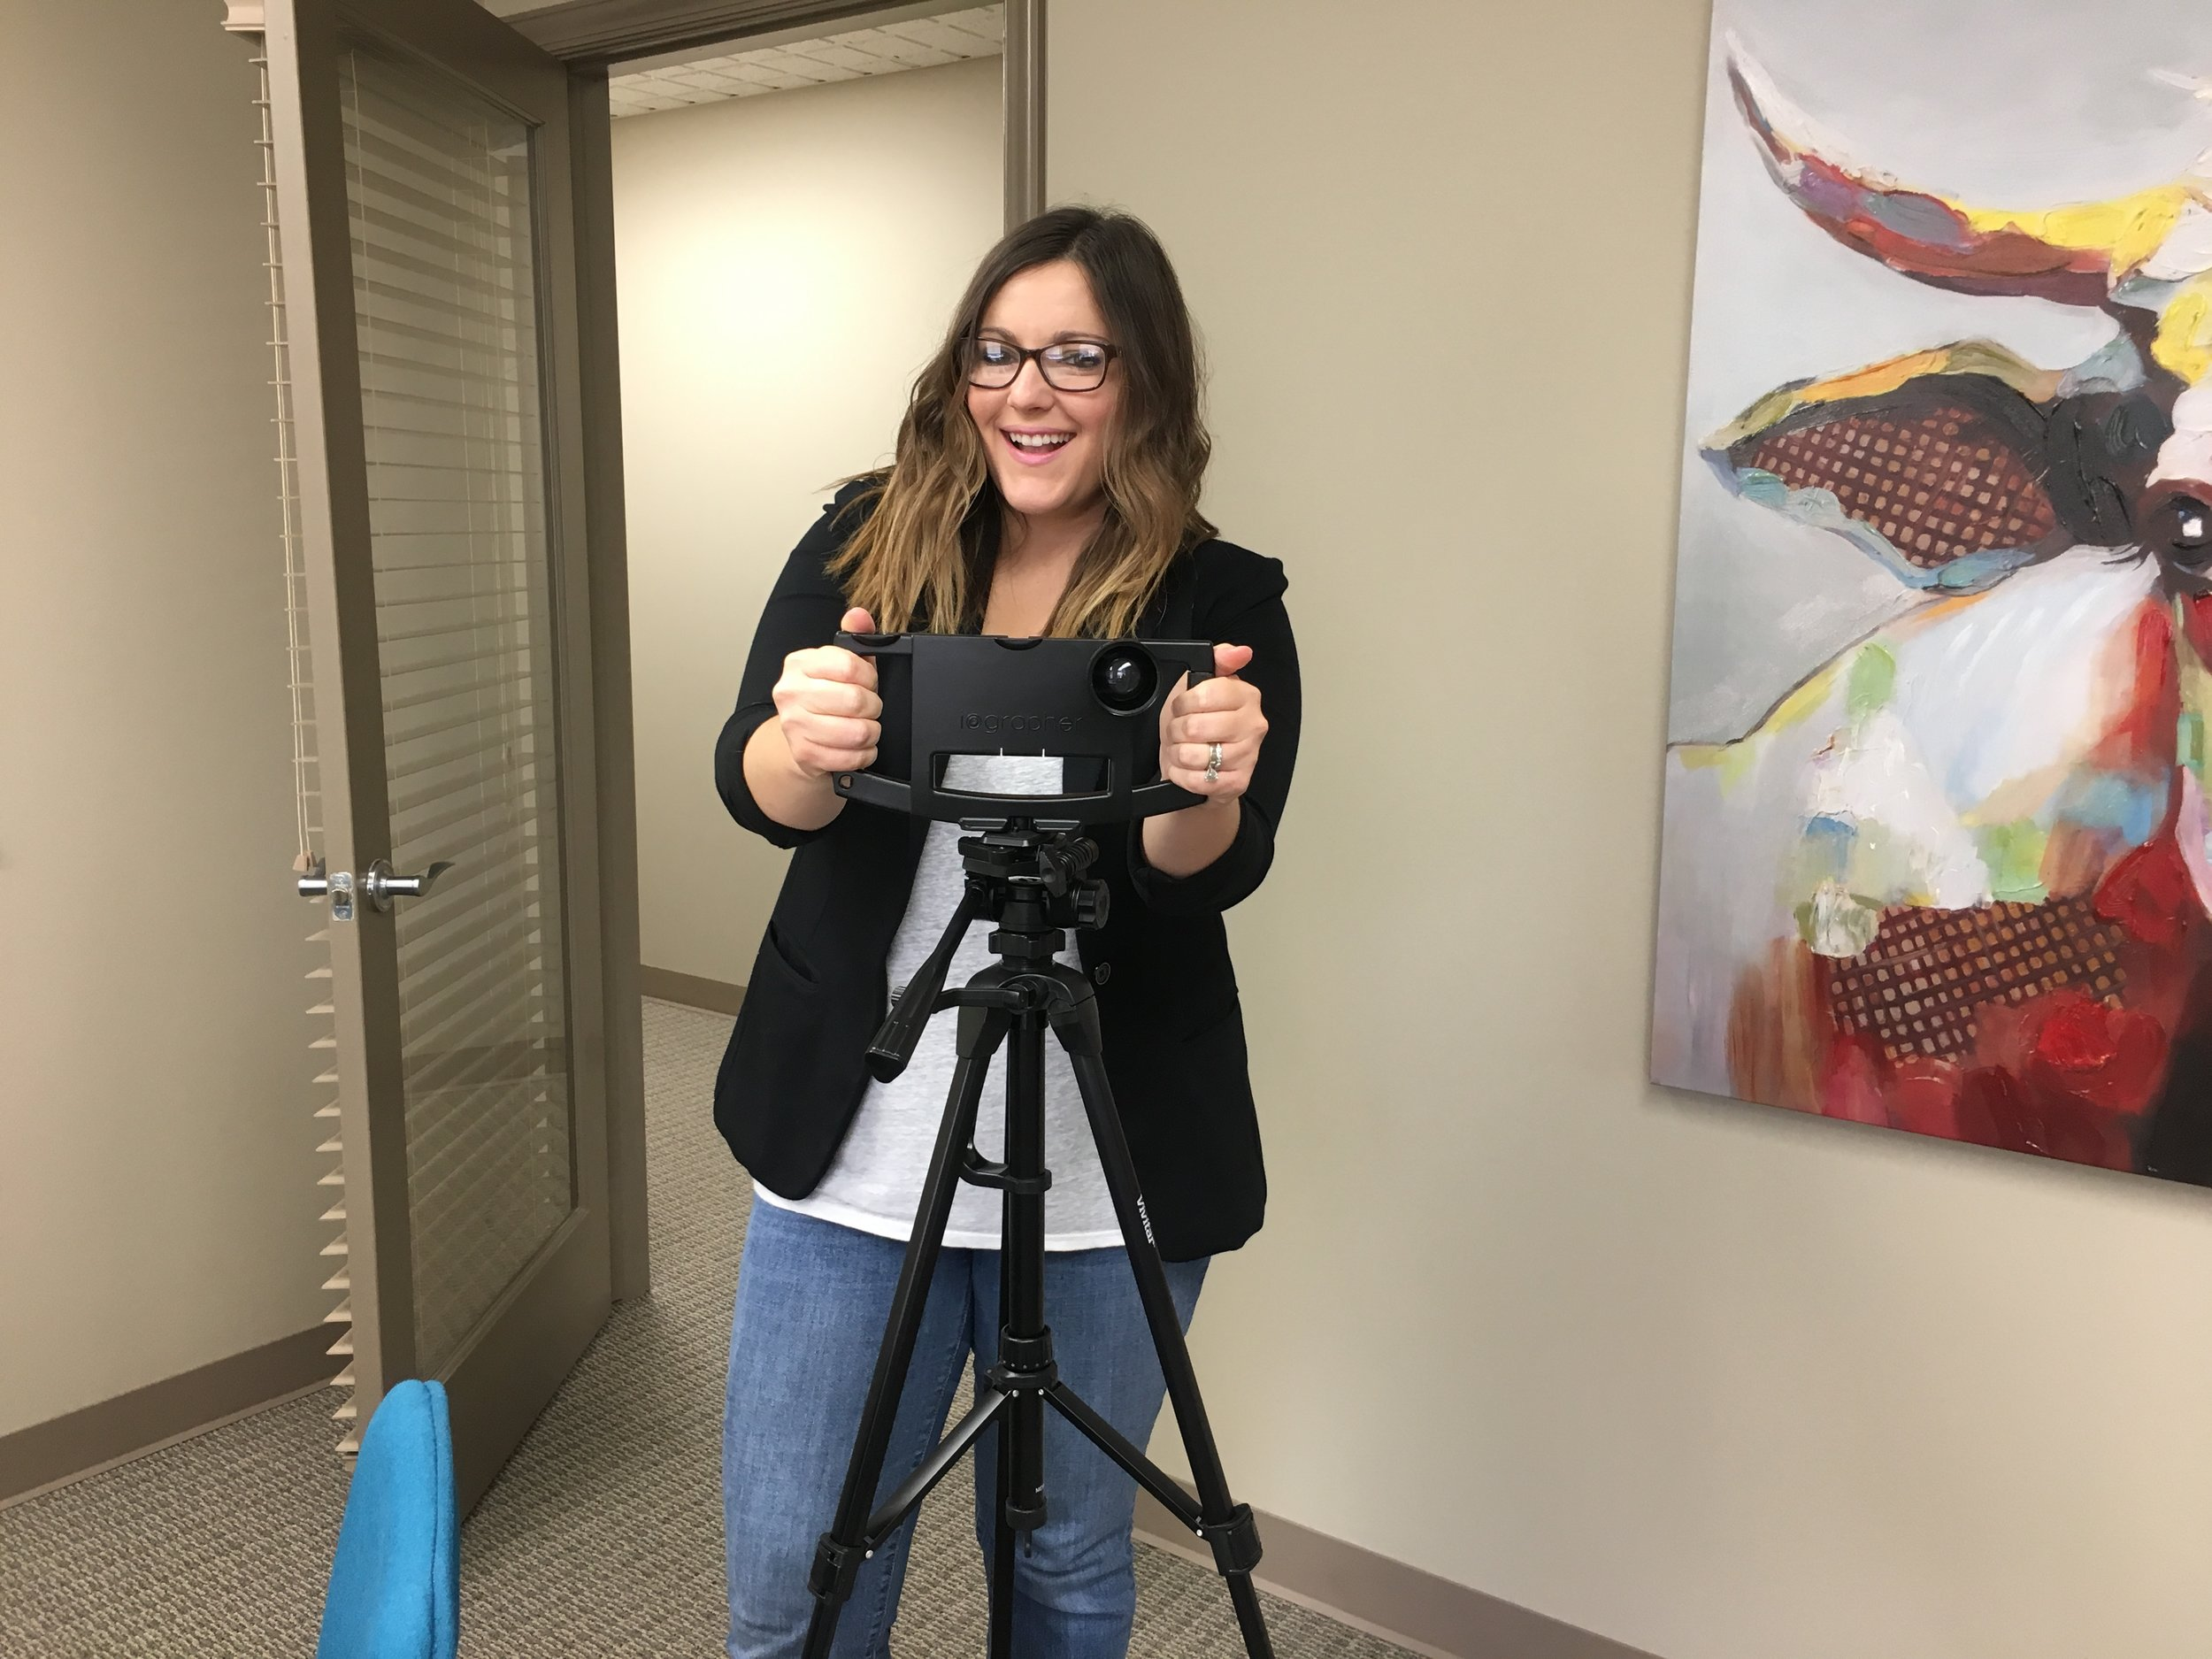 Claire Lemaster with iPhone 6 iOgrapher + wide angle lenses,mounted on 6 ft tripod.